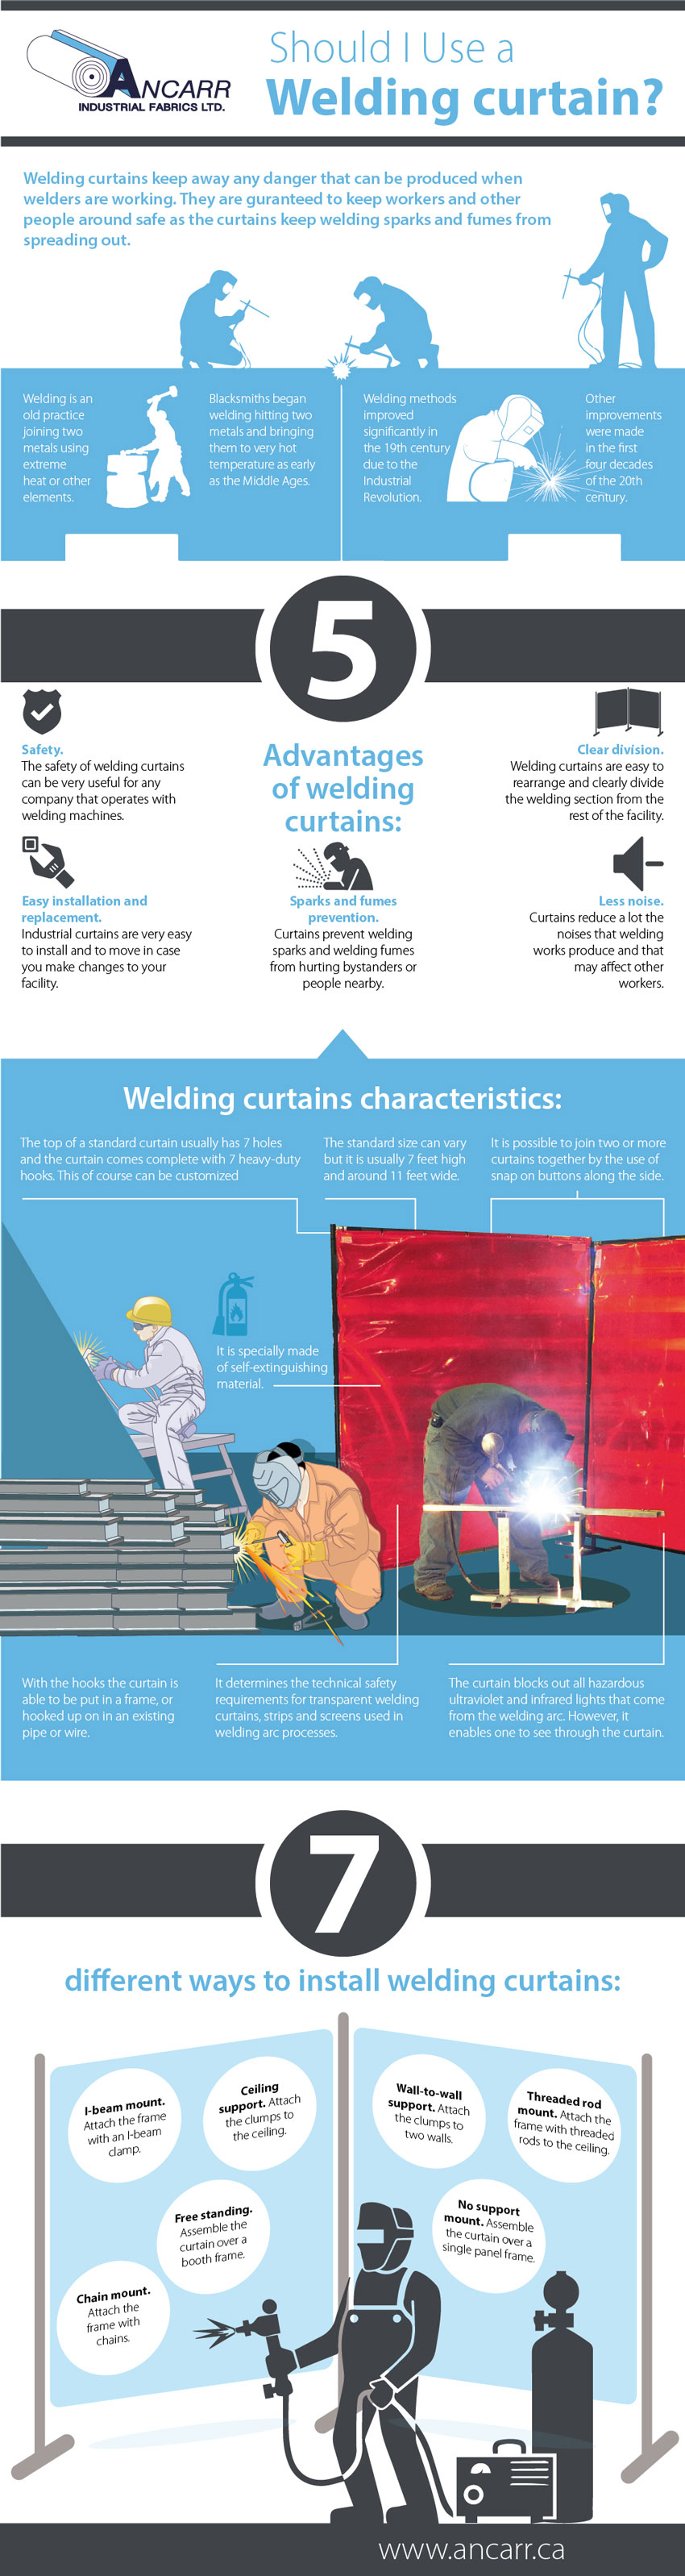 why-should-i-use-a-welding-curtain-infographic